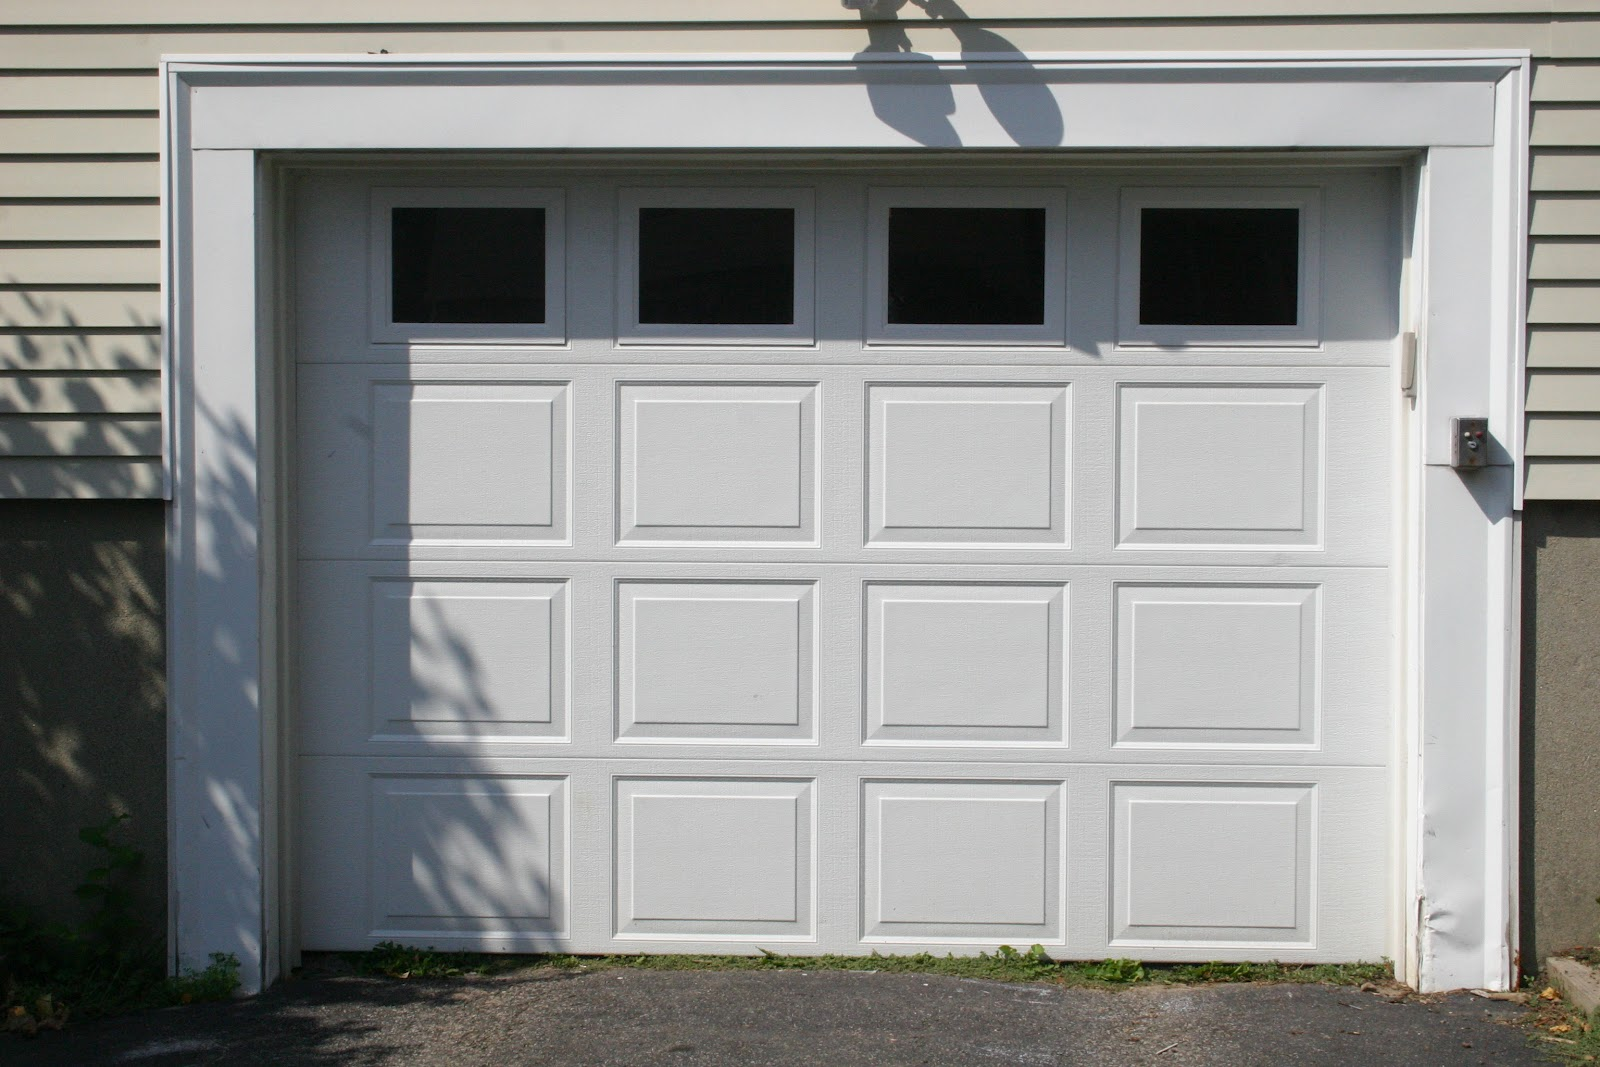 ... Guide to Repairing Garage Door Windows - Perfect Solutions Garage Door